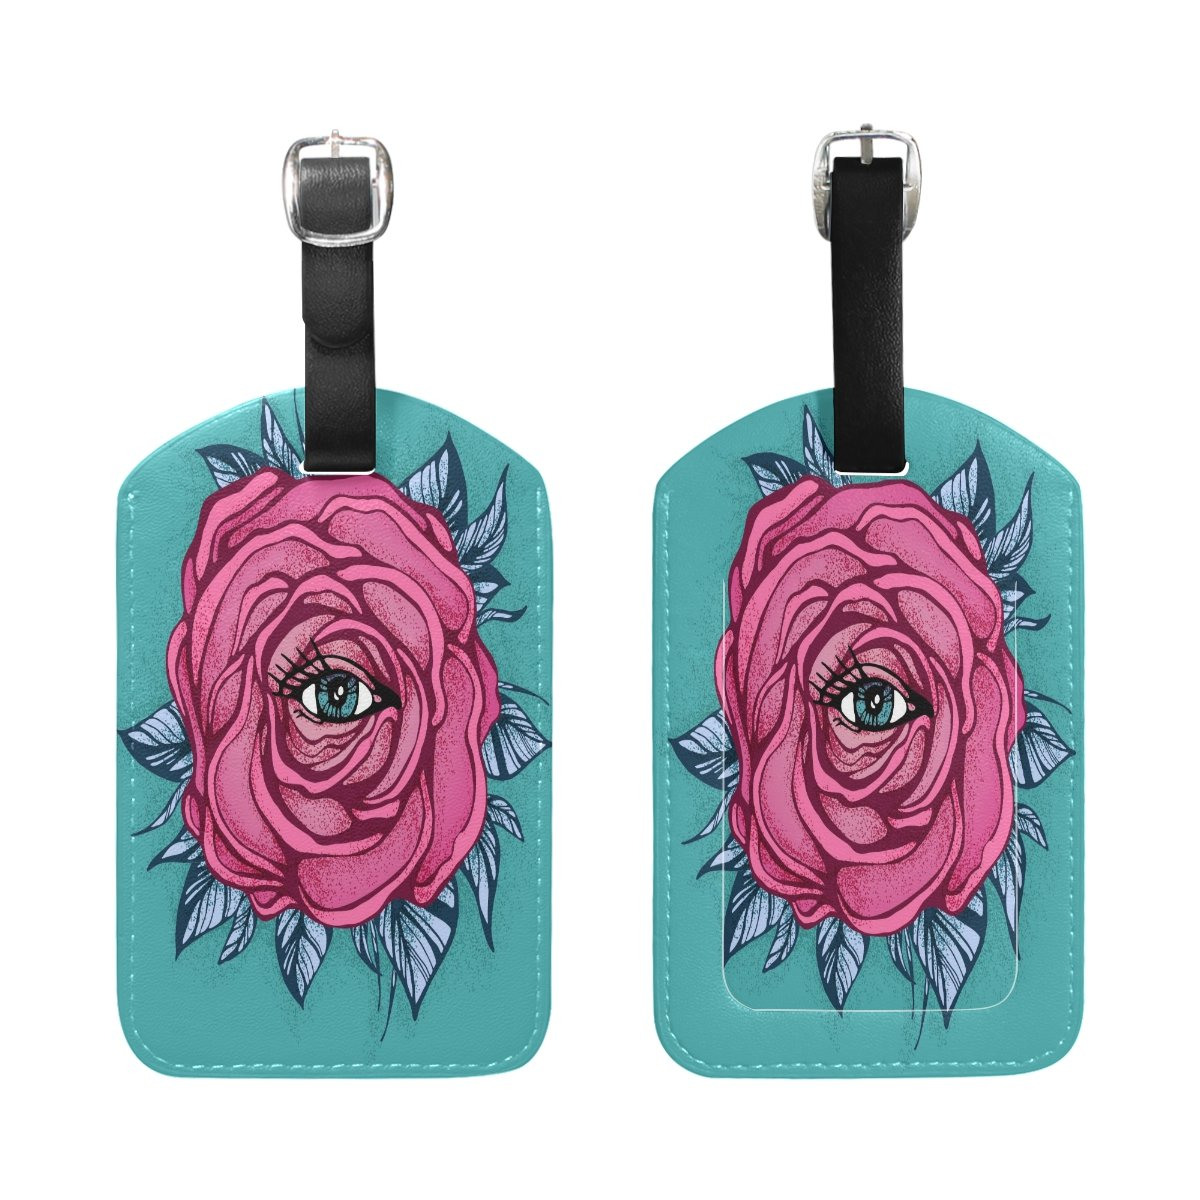 Saobao Travel Luggage Tag Pink Tattoo Rose PU Leather Baggage Travel ID